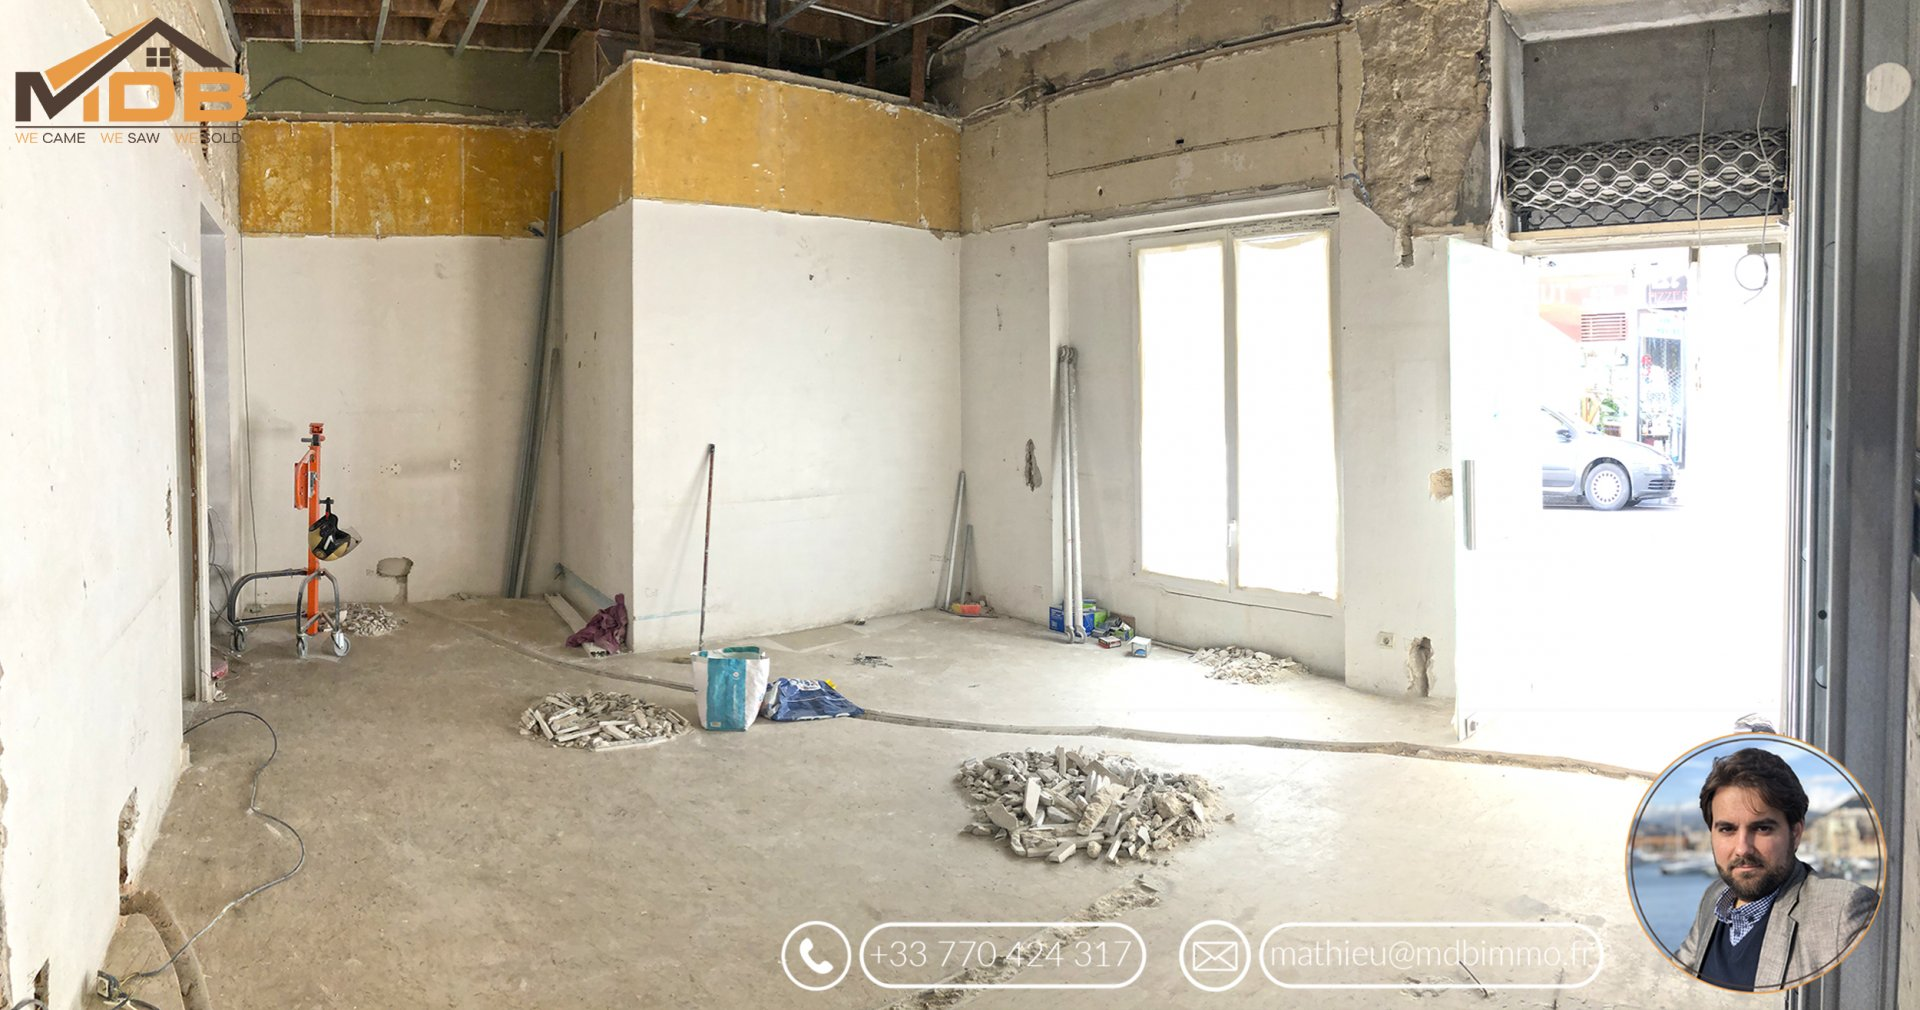 Nice - Proche promenade / Rue de France - Large commercial space (commercial walls) - high ceilings